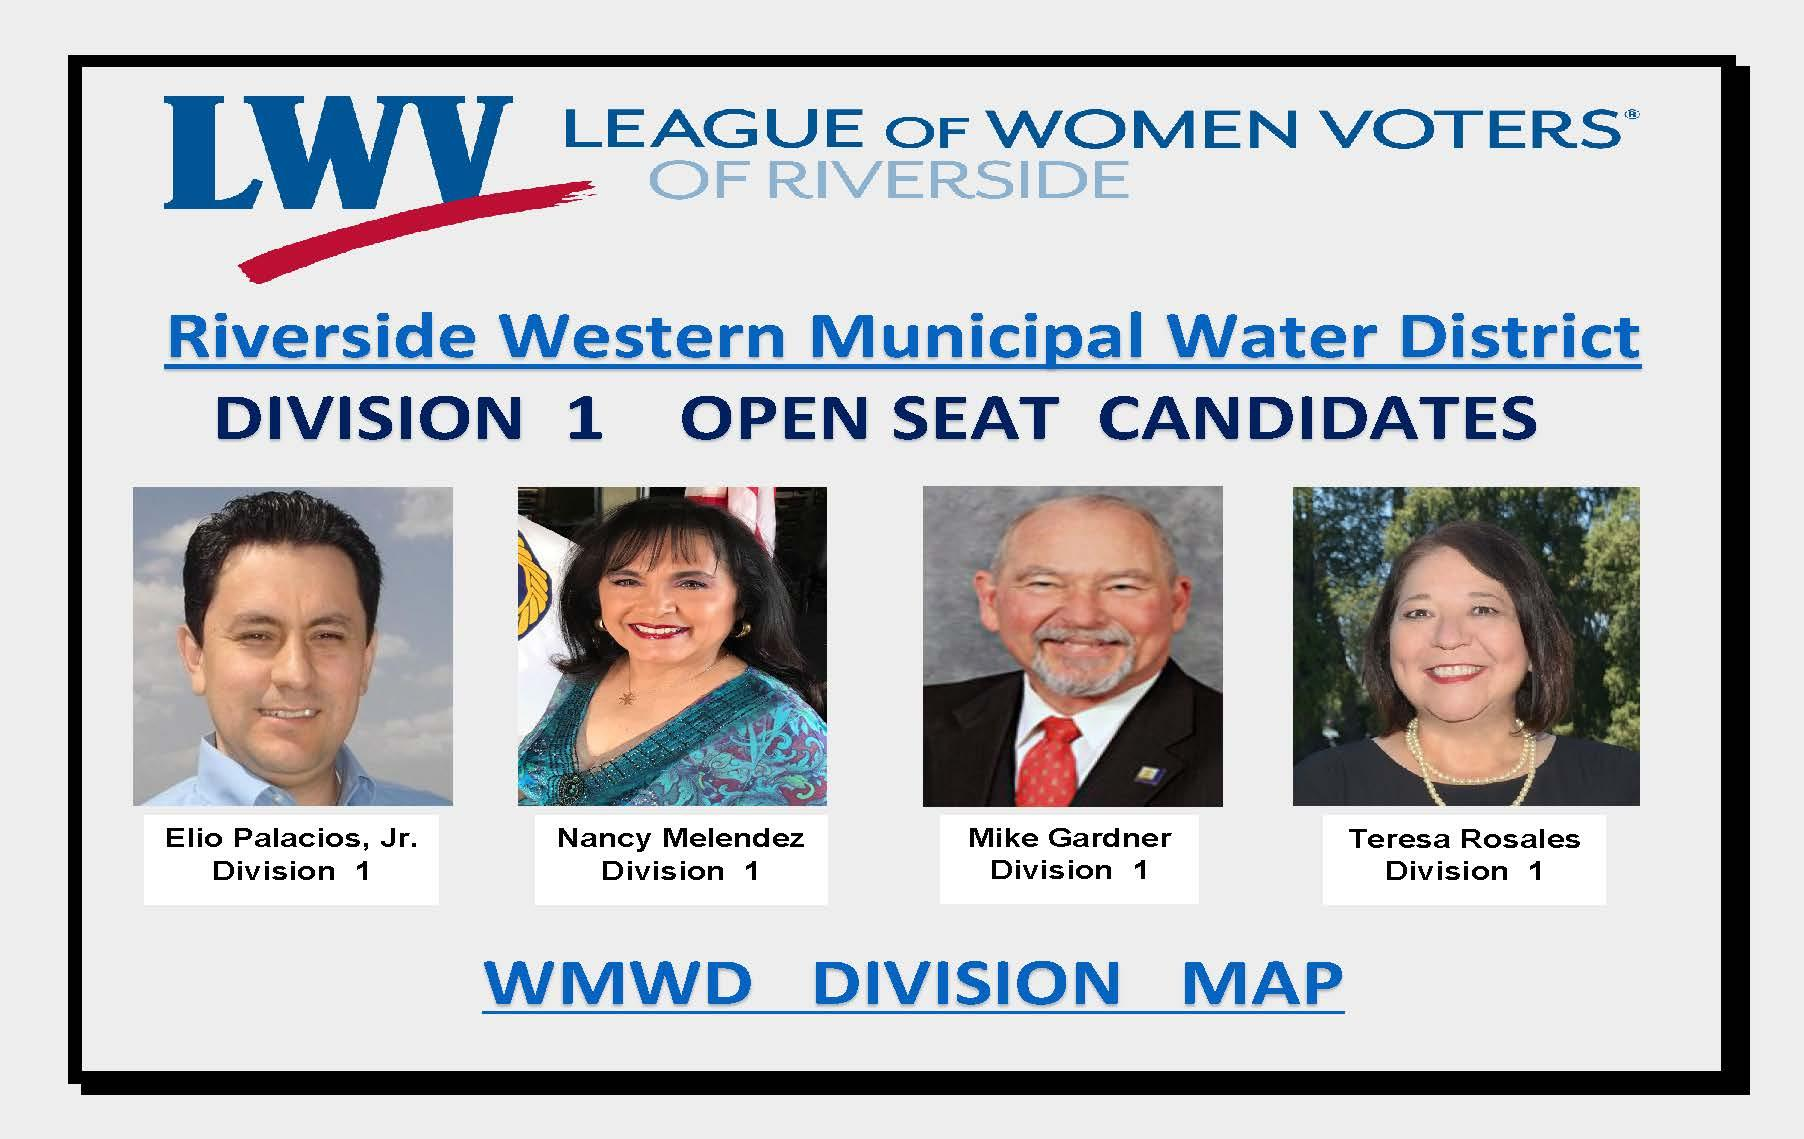 2020 WMWD Division 1 Open Seat Candidates